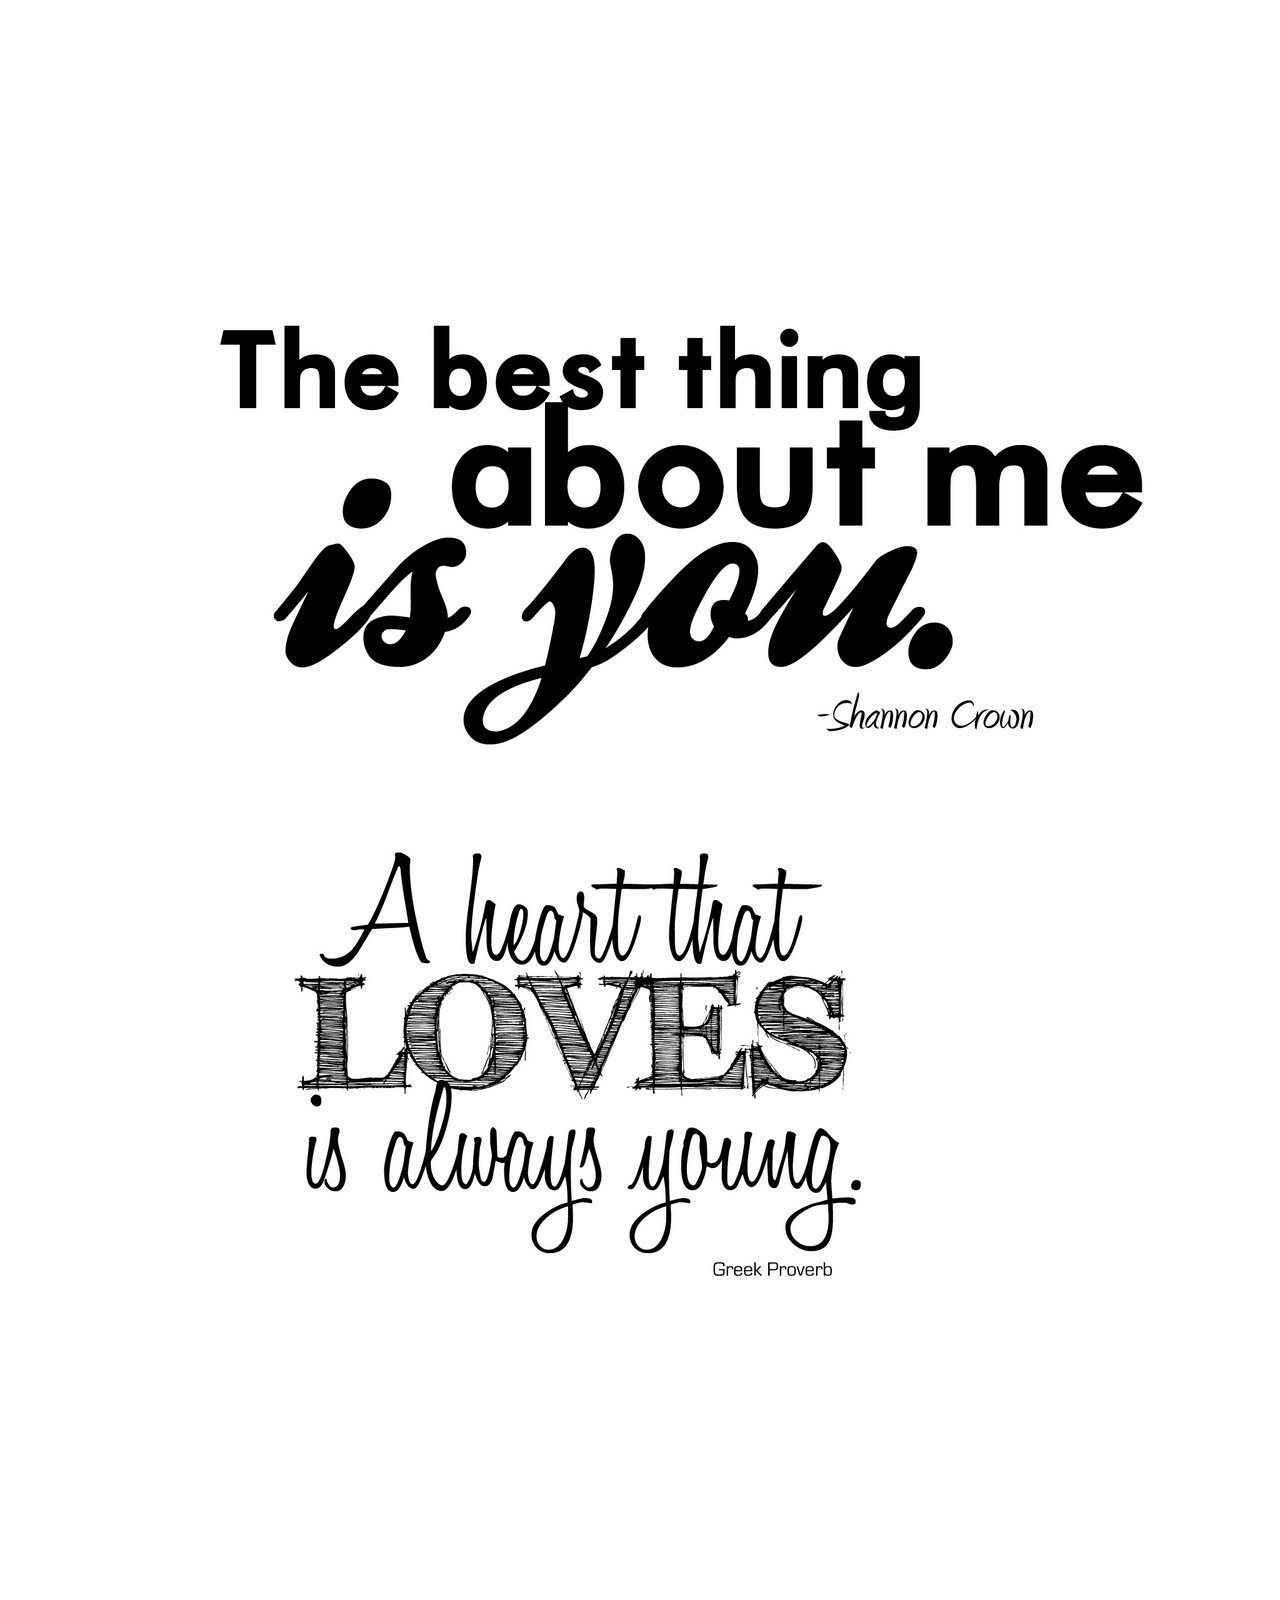 Love Lyrics Quotes: Love Quotes Using Song Lyrics